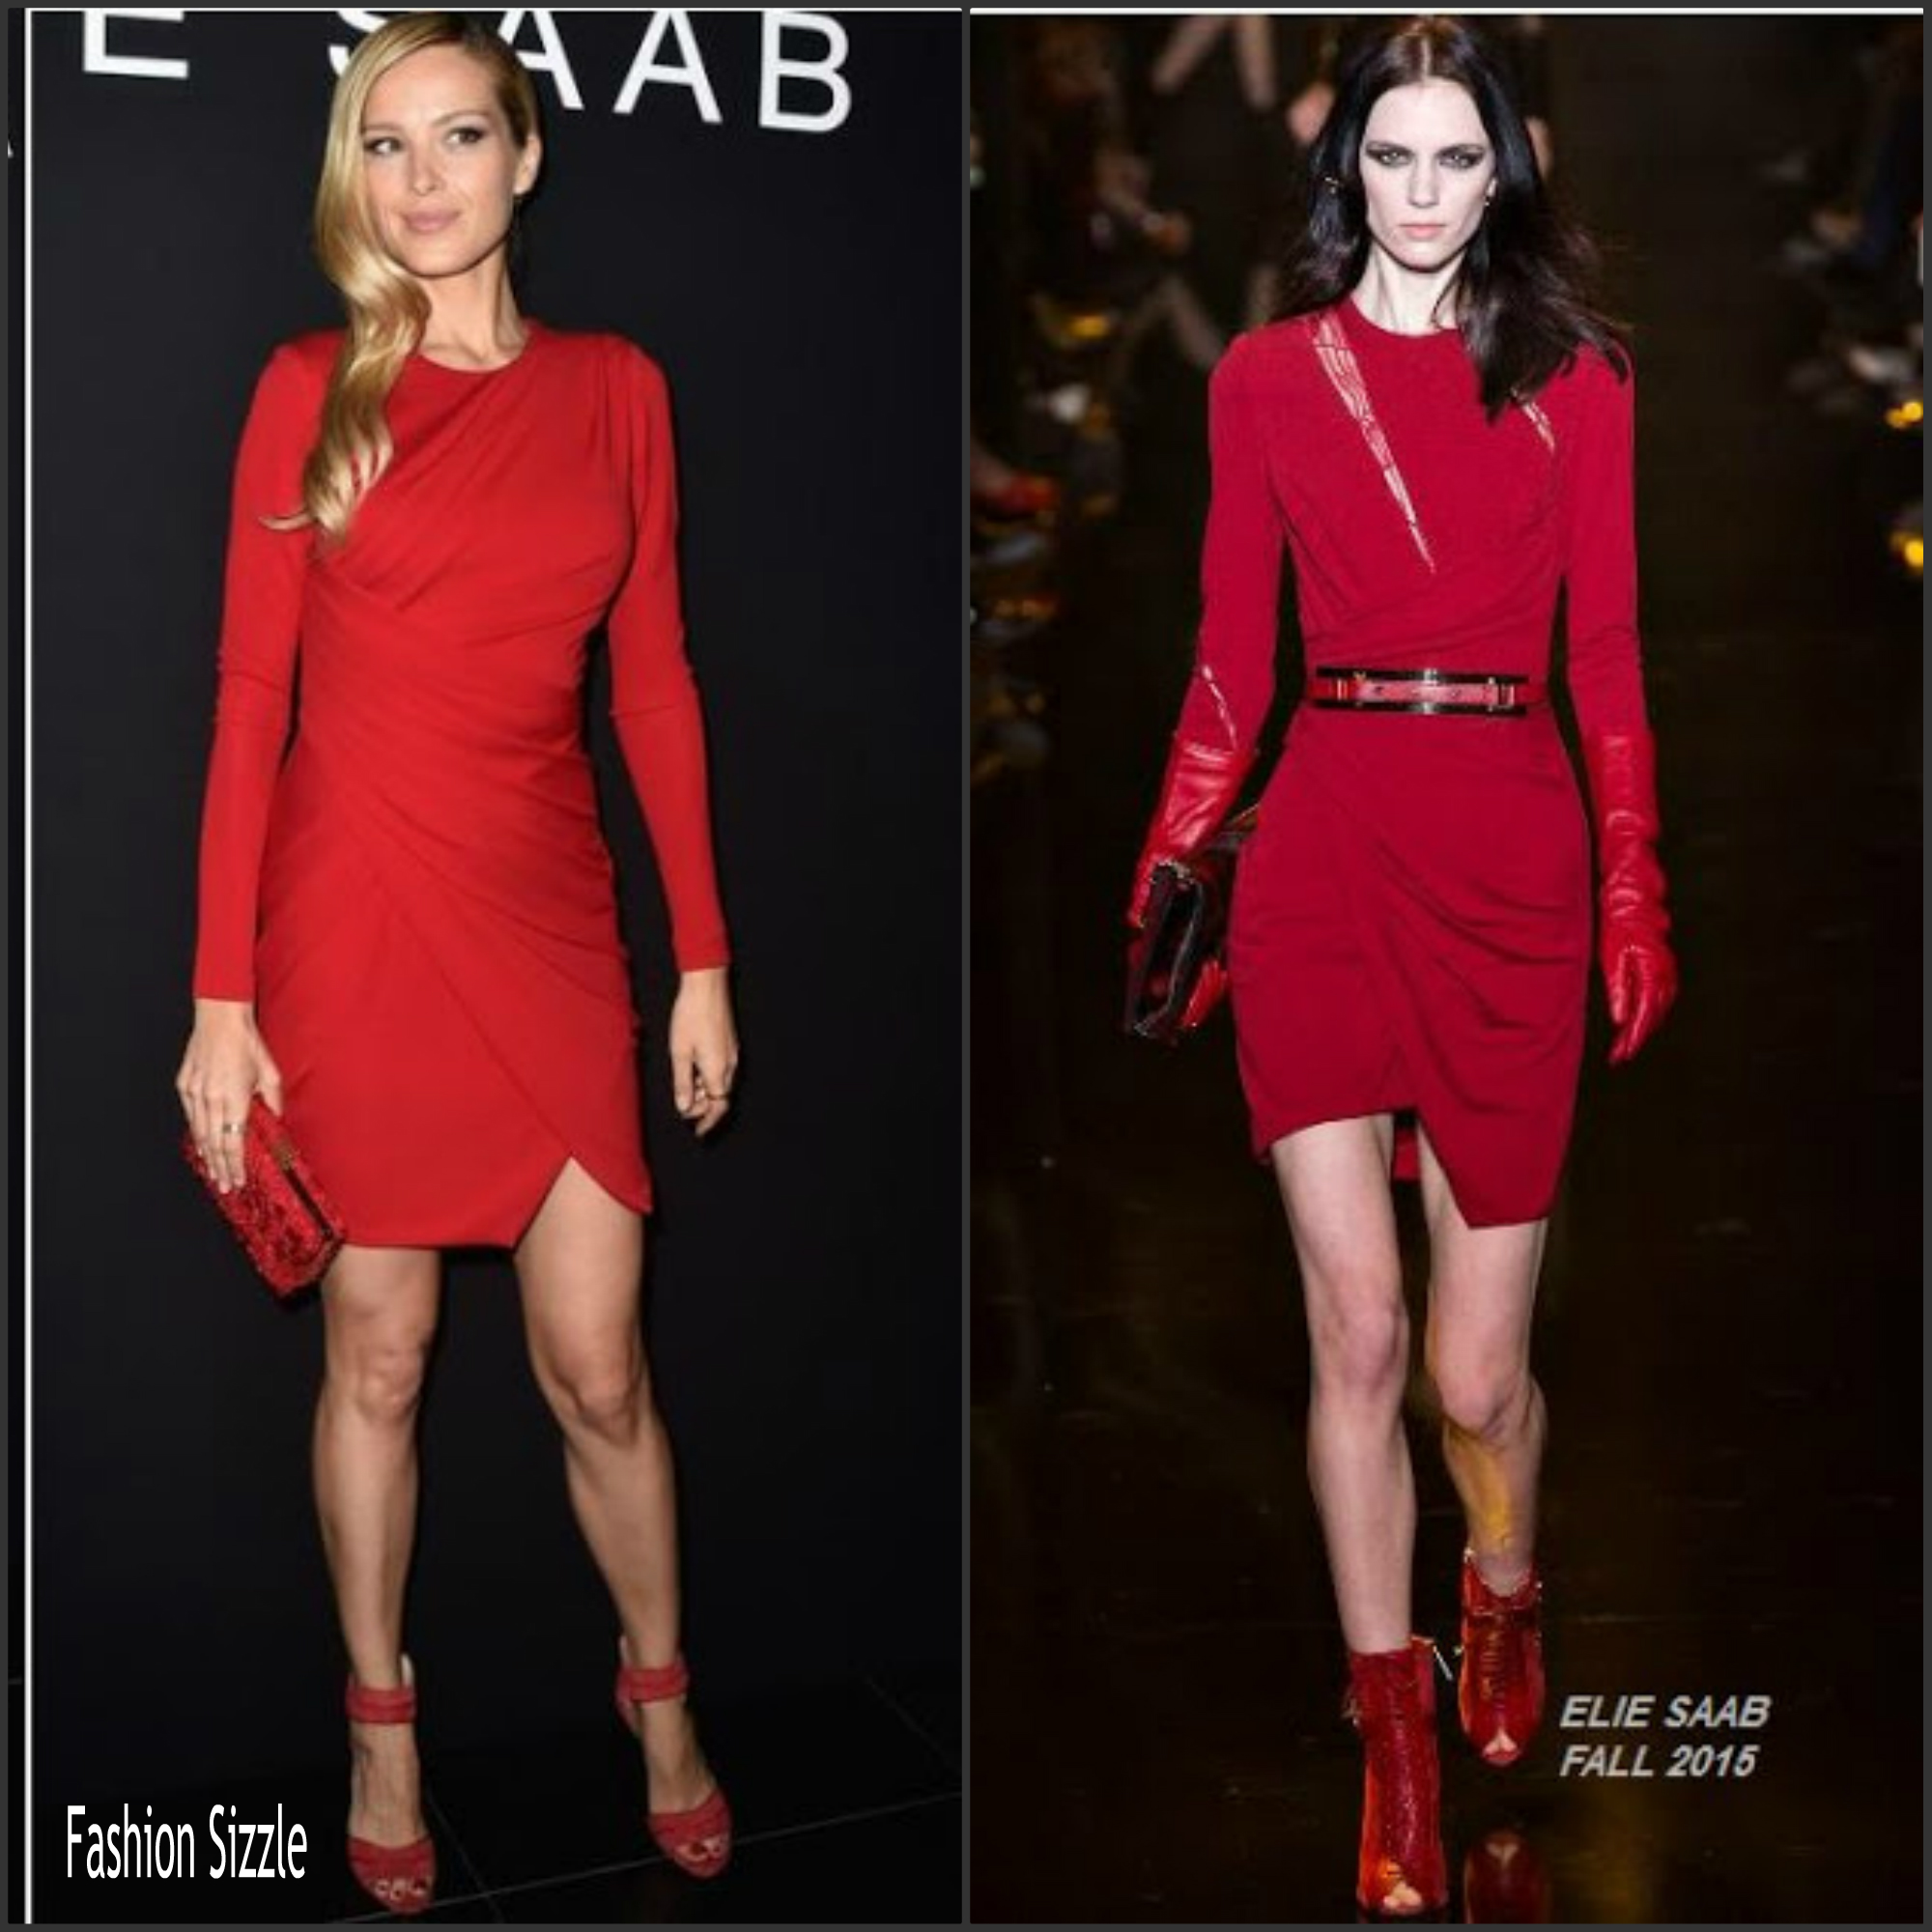 petra-nemcova-in-elie-saab-at-the-elie-saab-fall-winter-2015-2016-show